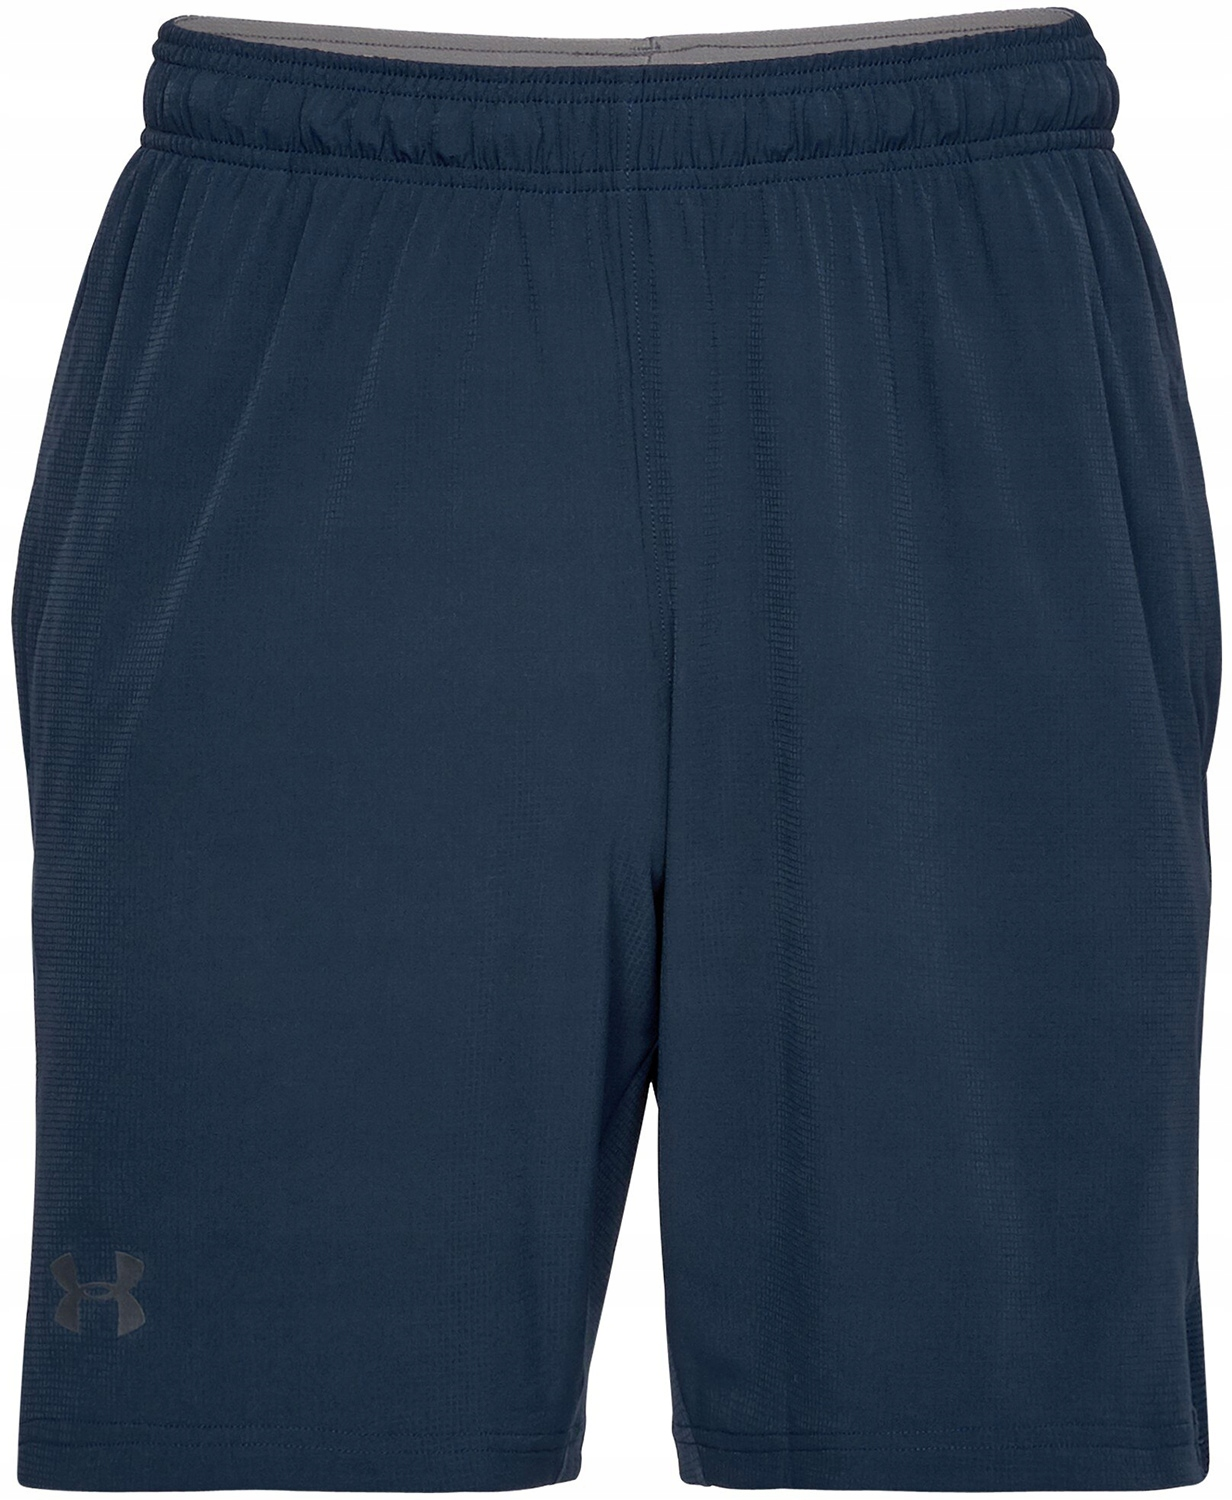 Under Armour UA Cage Short Navy # M (1304127-408)